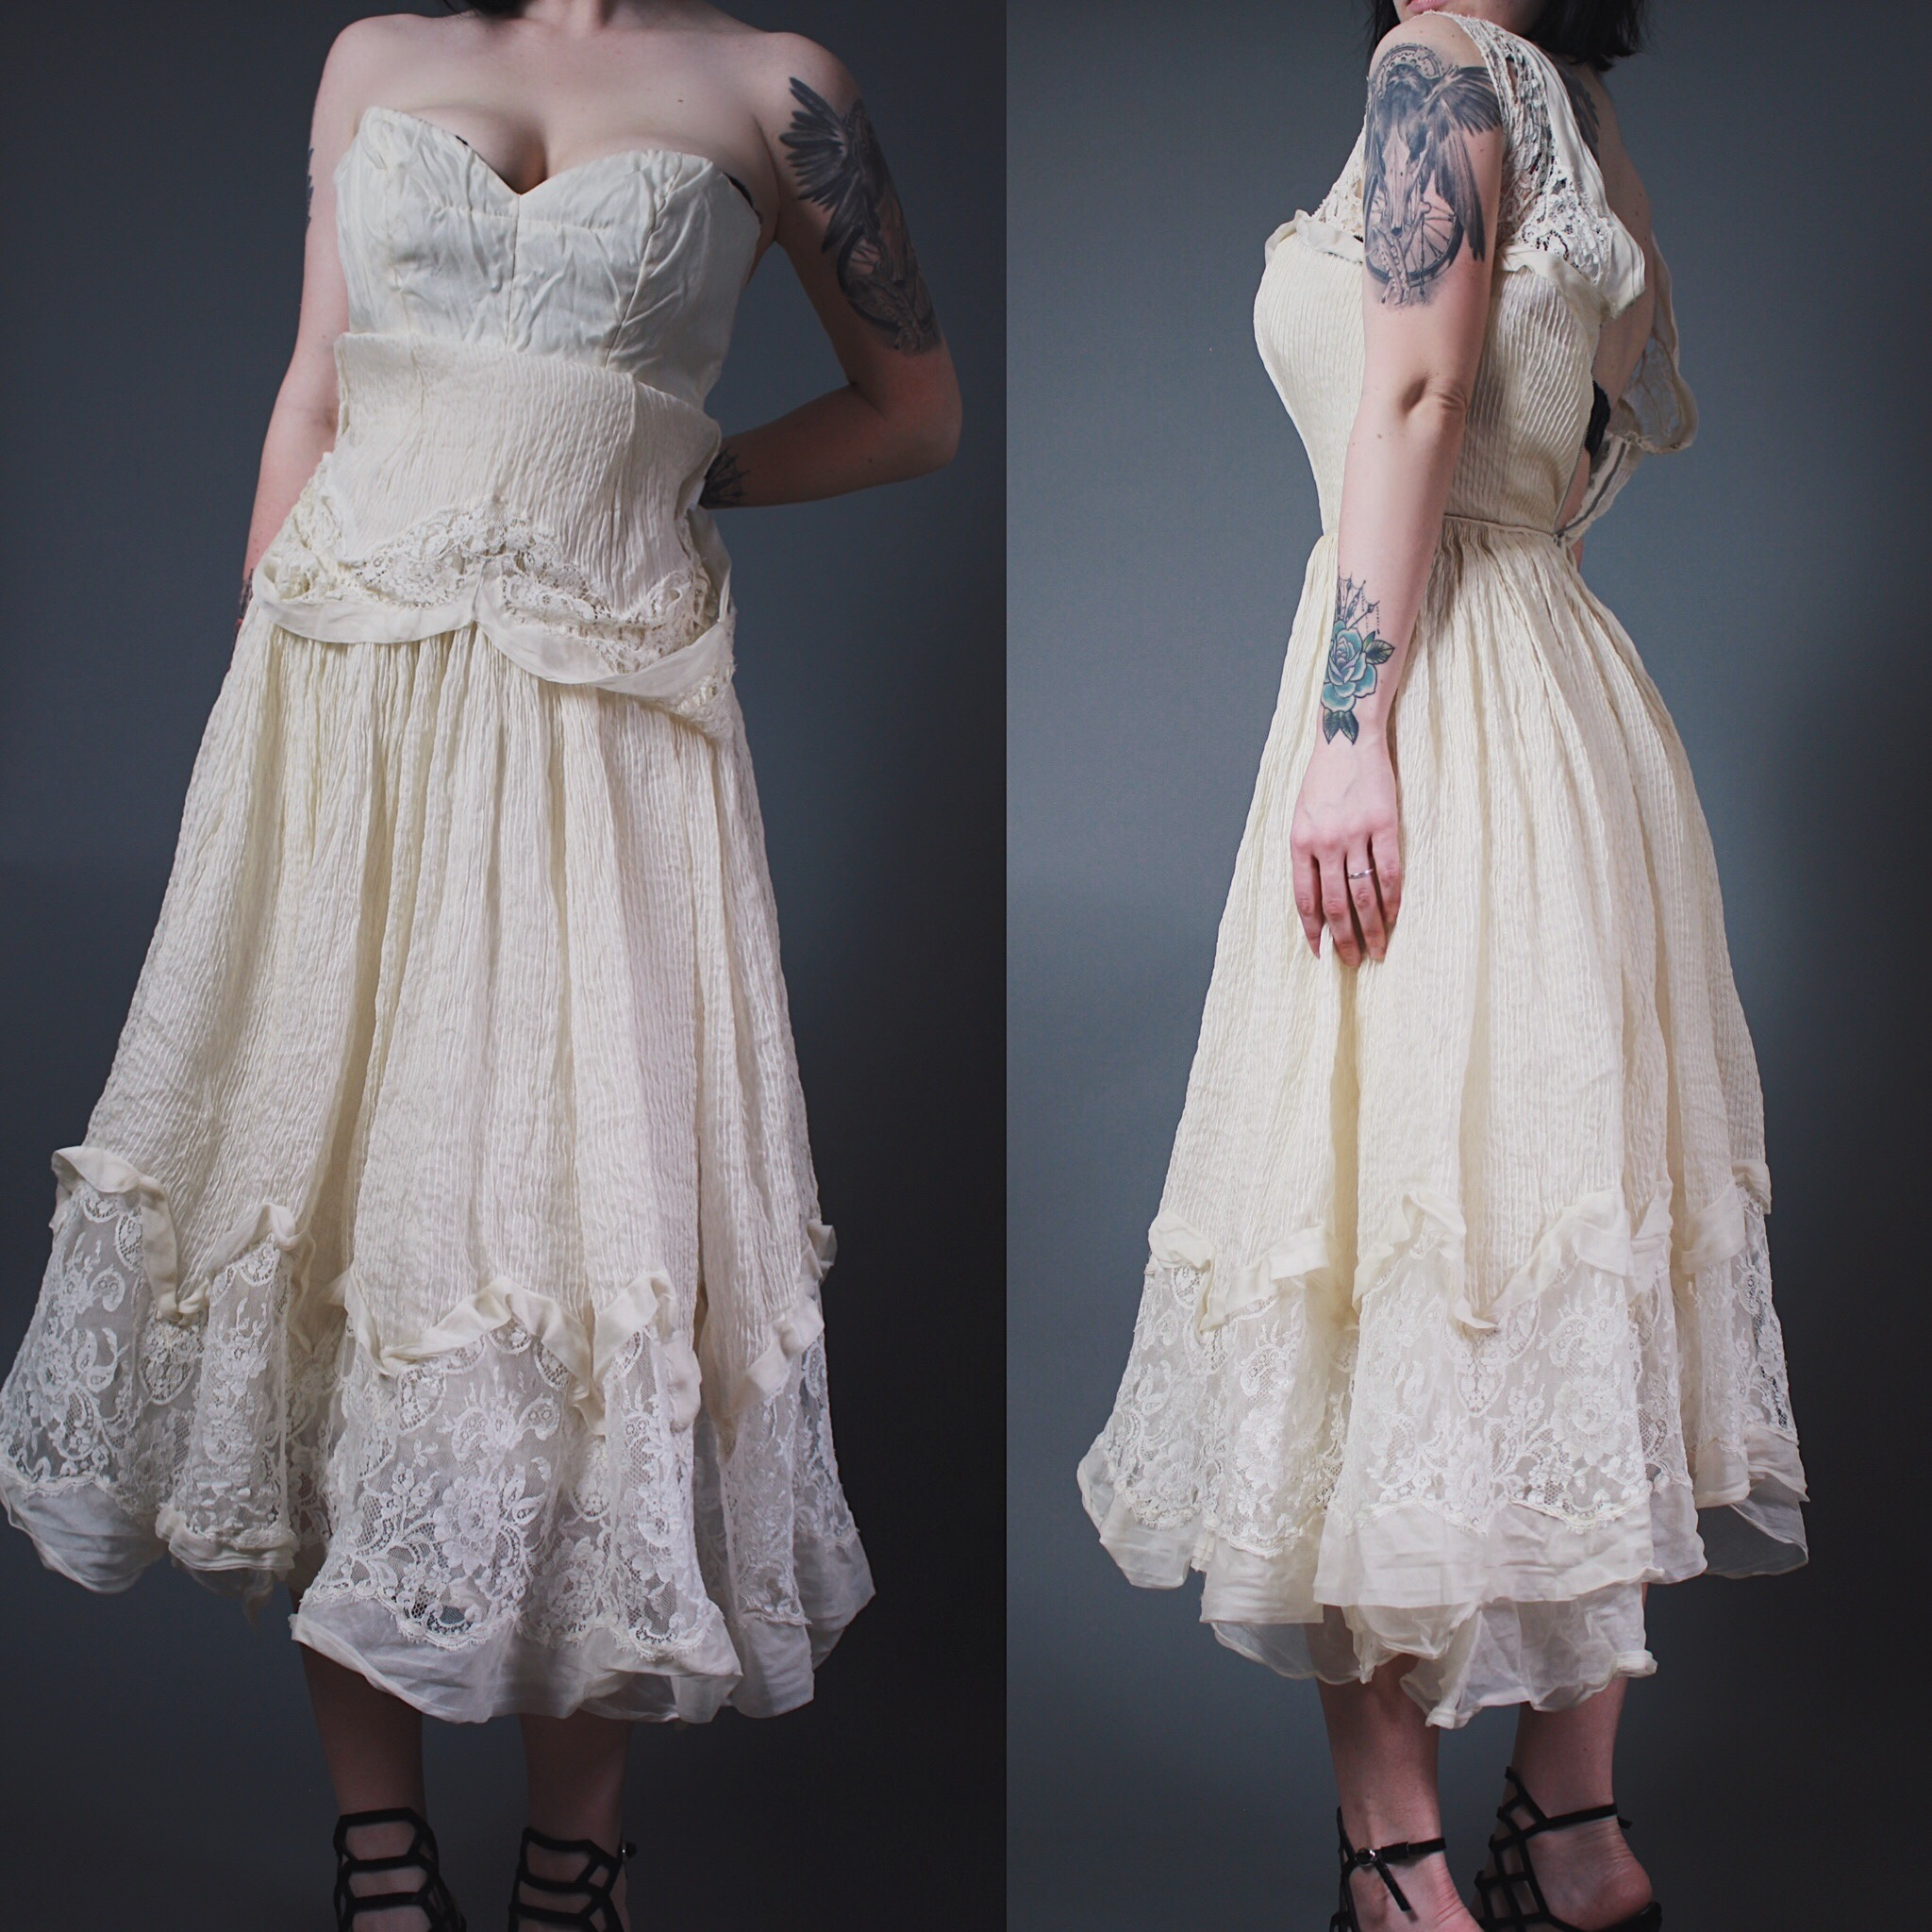 Claimed Vs420 Vintage 1950s Layered Lace Steunk Wedding Dress: Cool Steam Punk Wedding Dresses At Websimilar.org